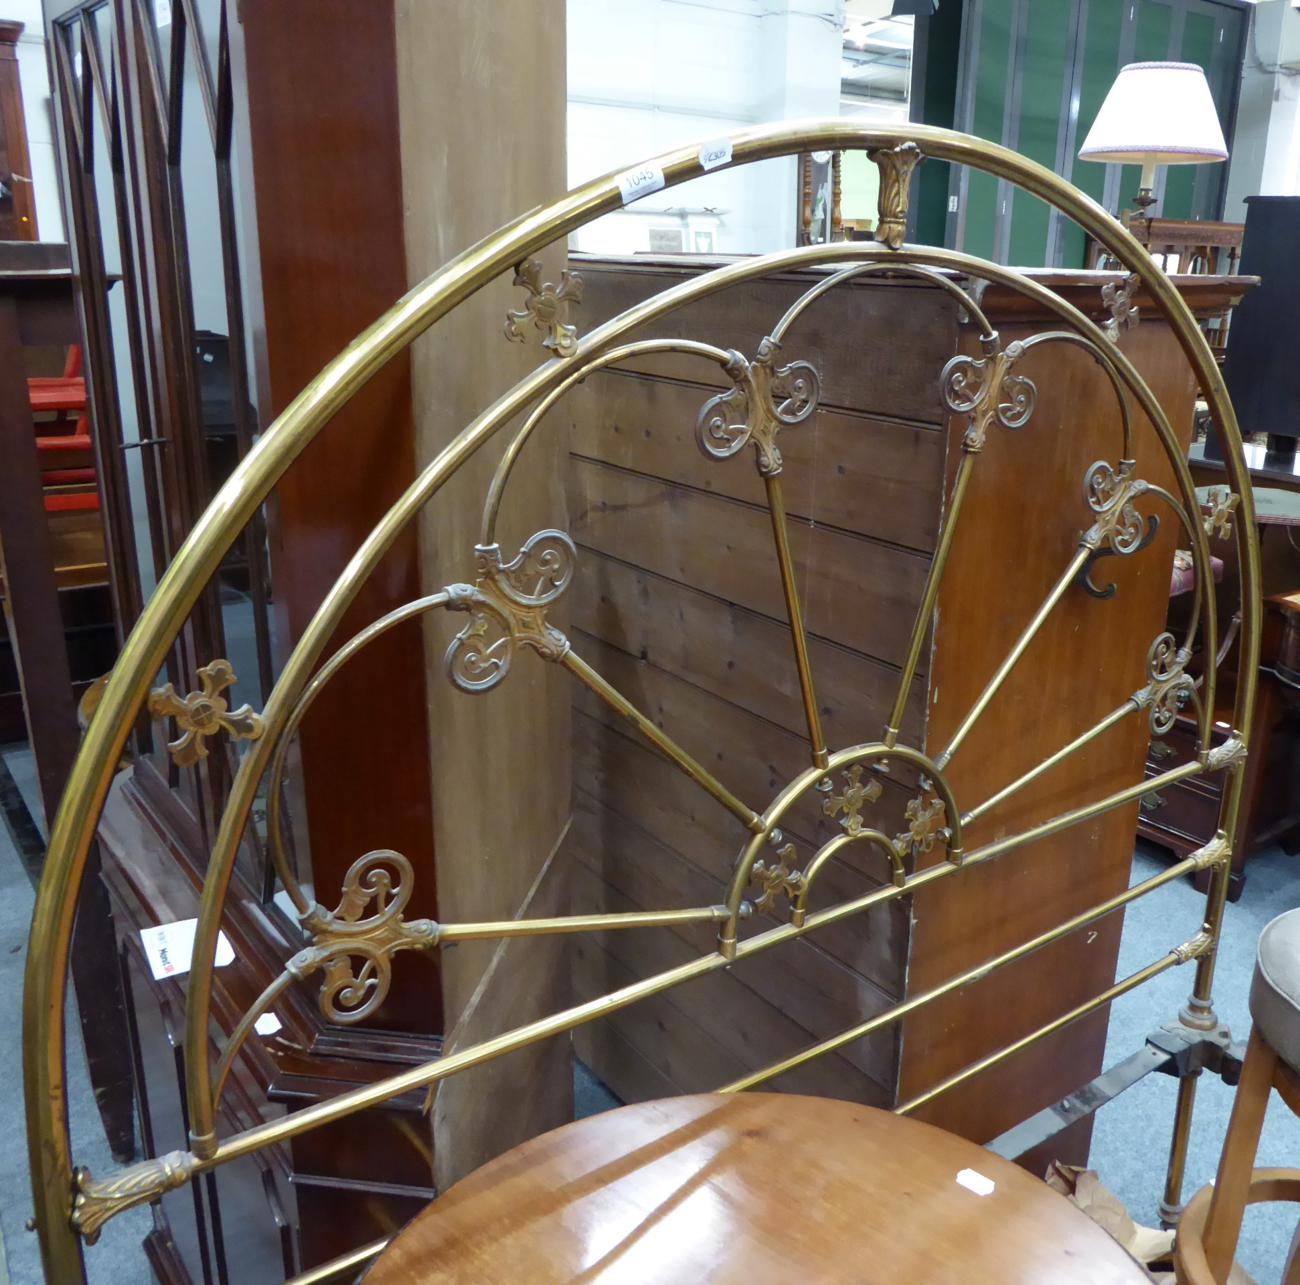 Tennants Auctioneers: A brass bed frame with arched head and foot